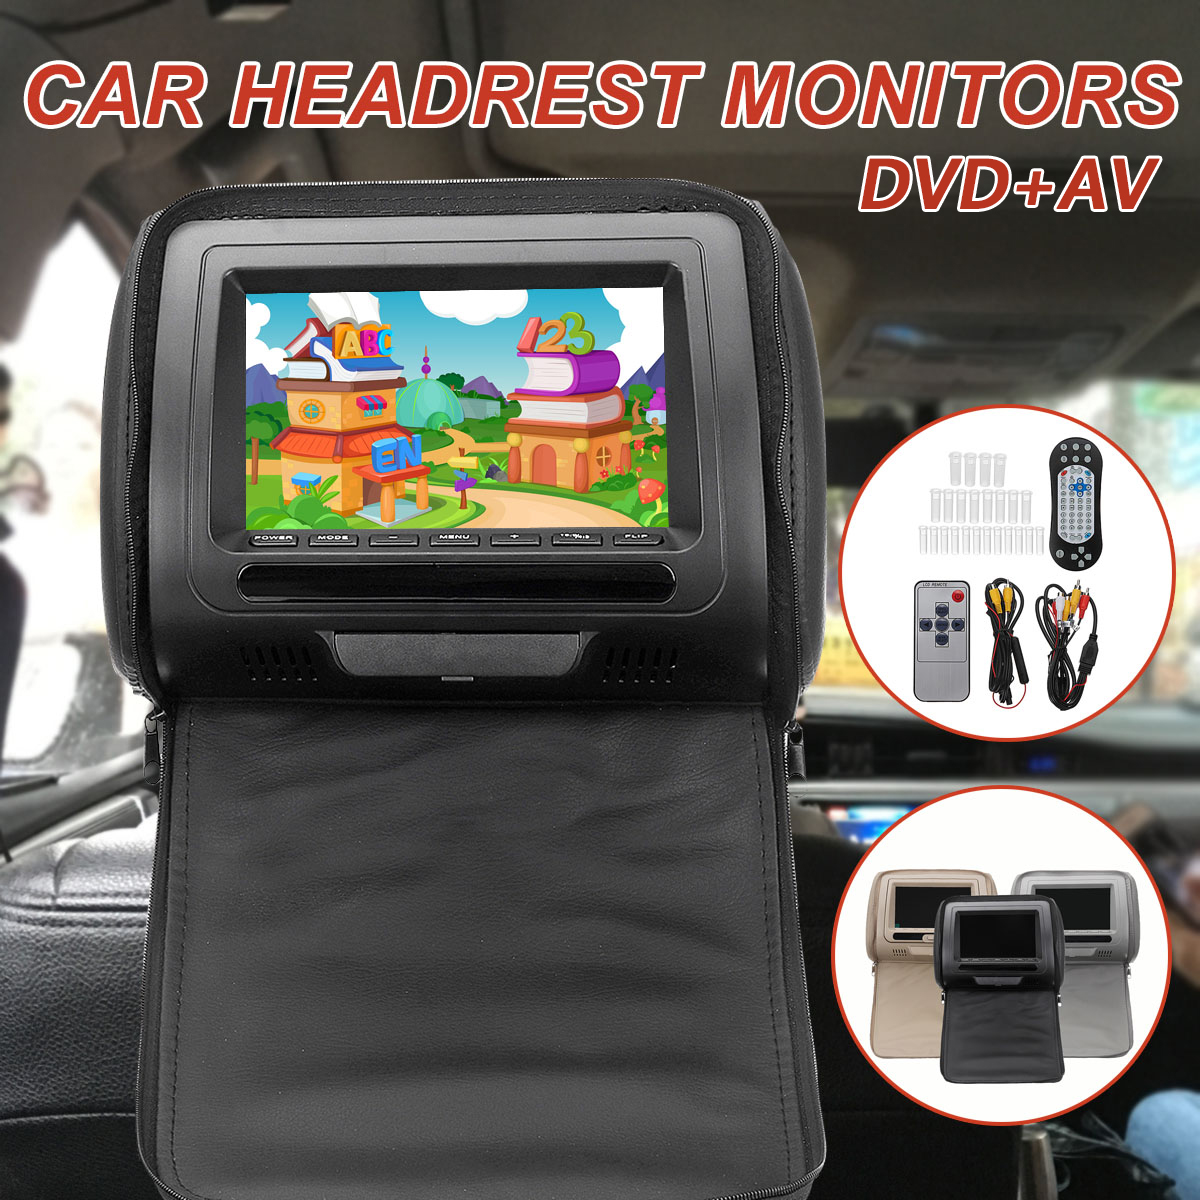 7 Inch Headrest Player DVD+ AV Monitor Digital Screen for Car Pillow Wireless Remote Control MP5 Player Monitor With Wire Kit